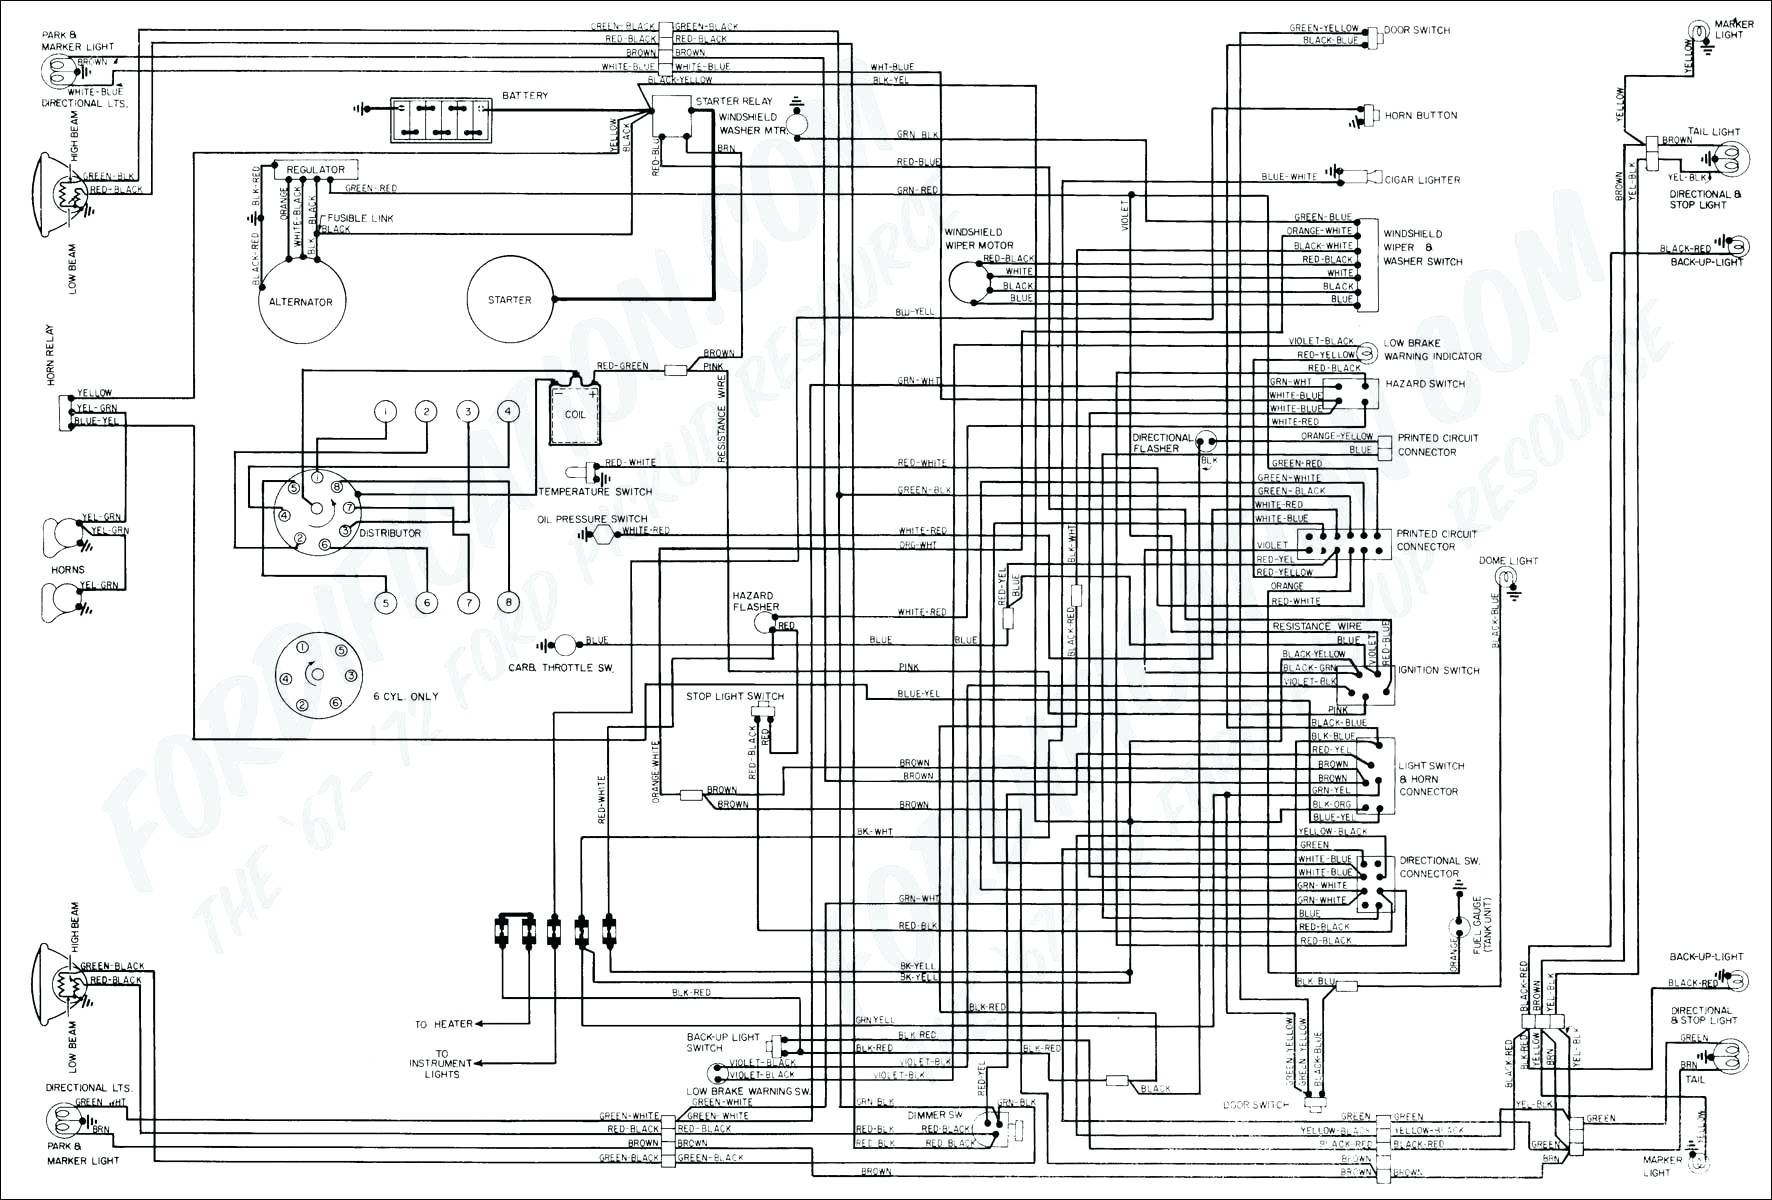 Ford F150 Wiring Harness Diagram 1973 1979 ford Truck